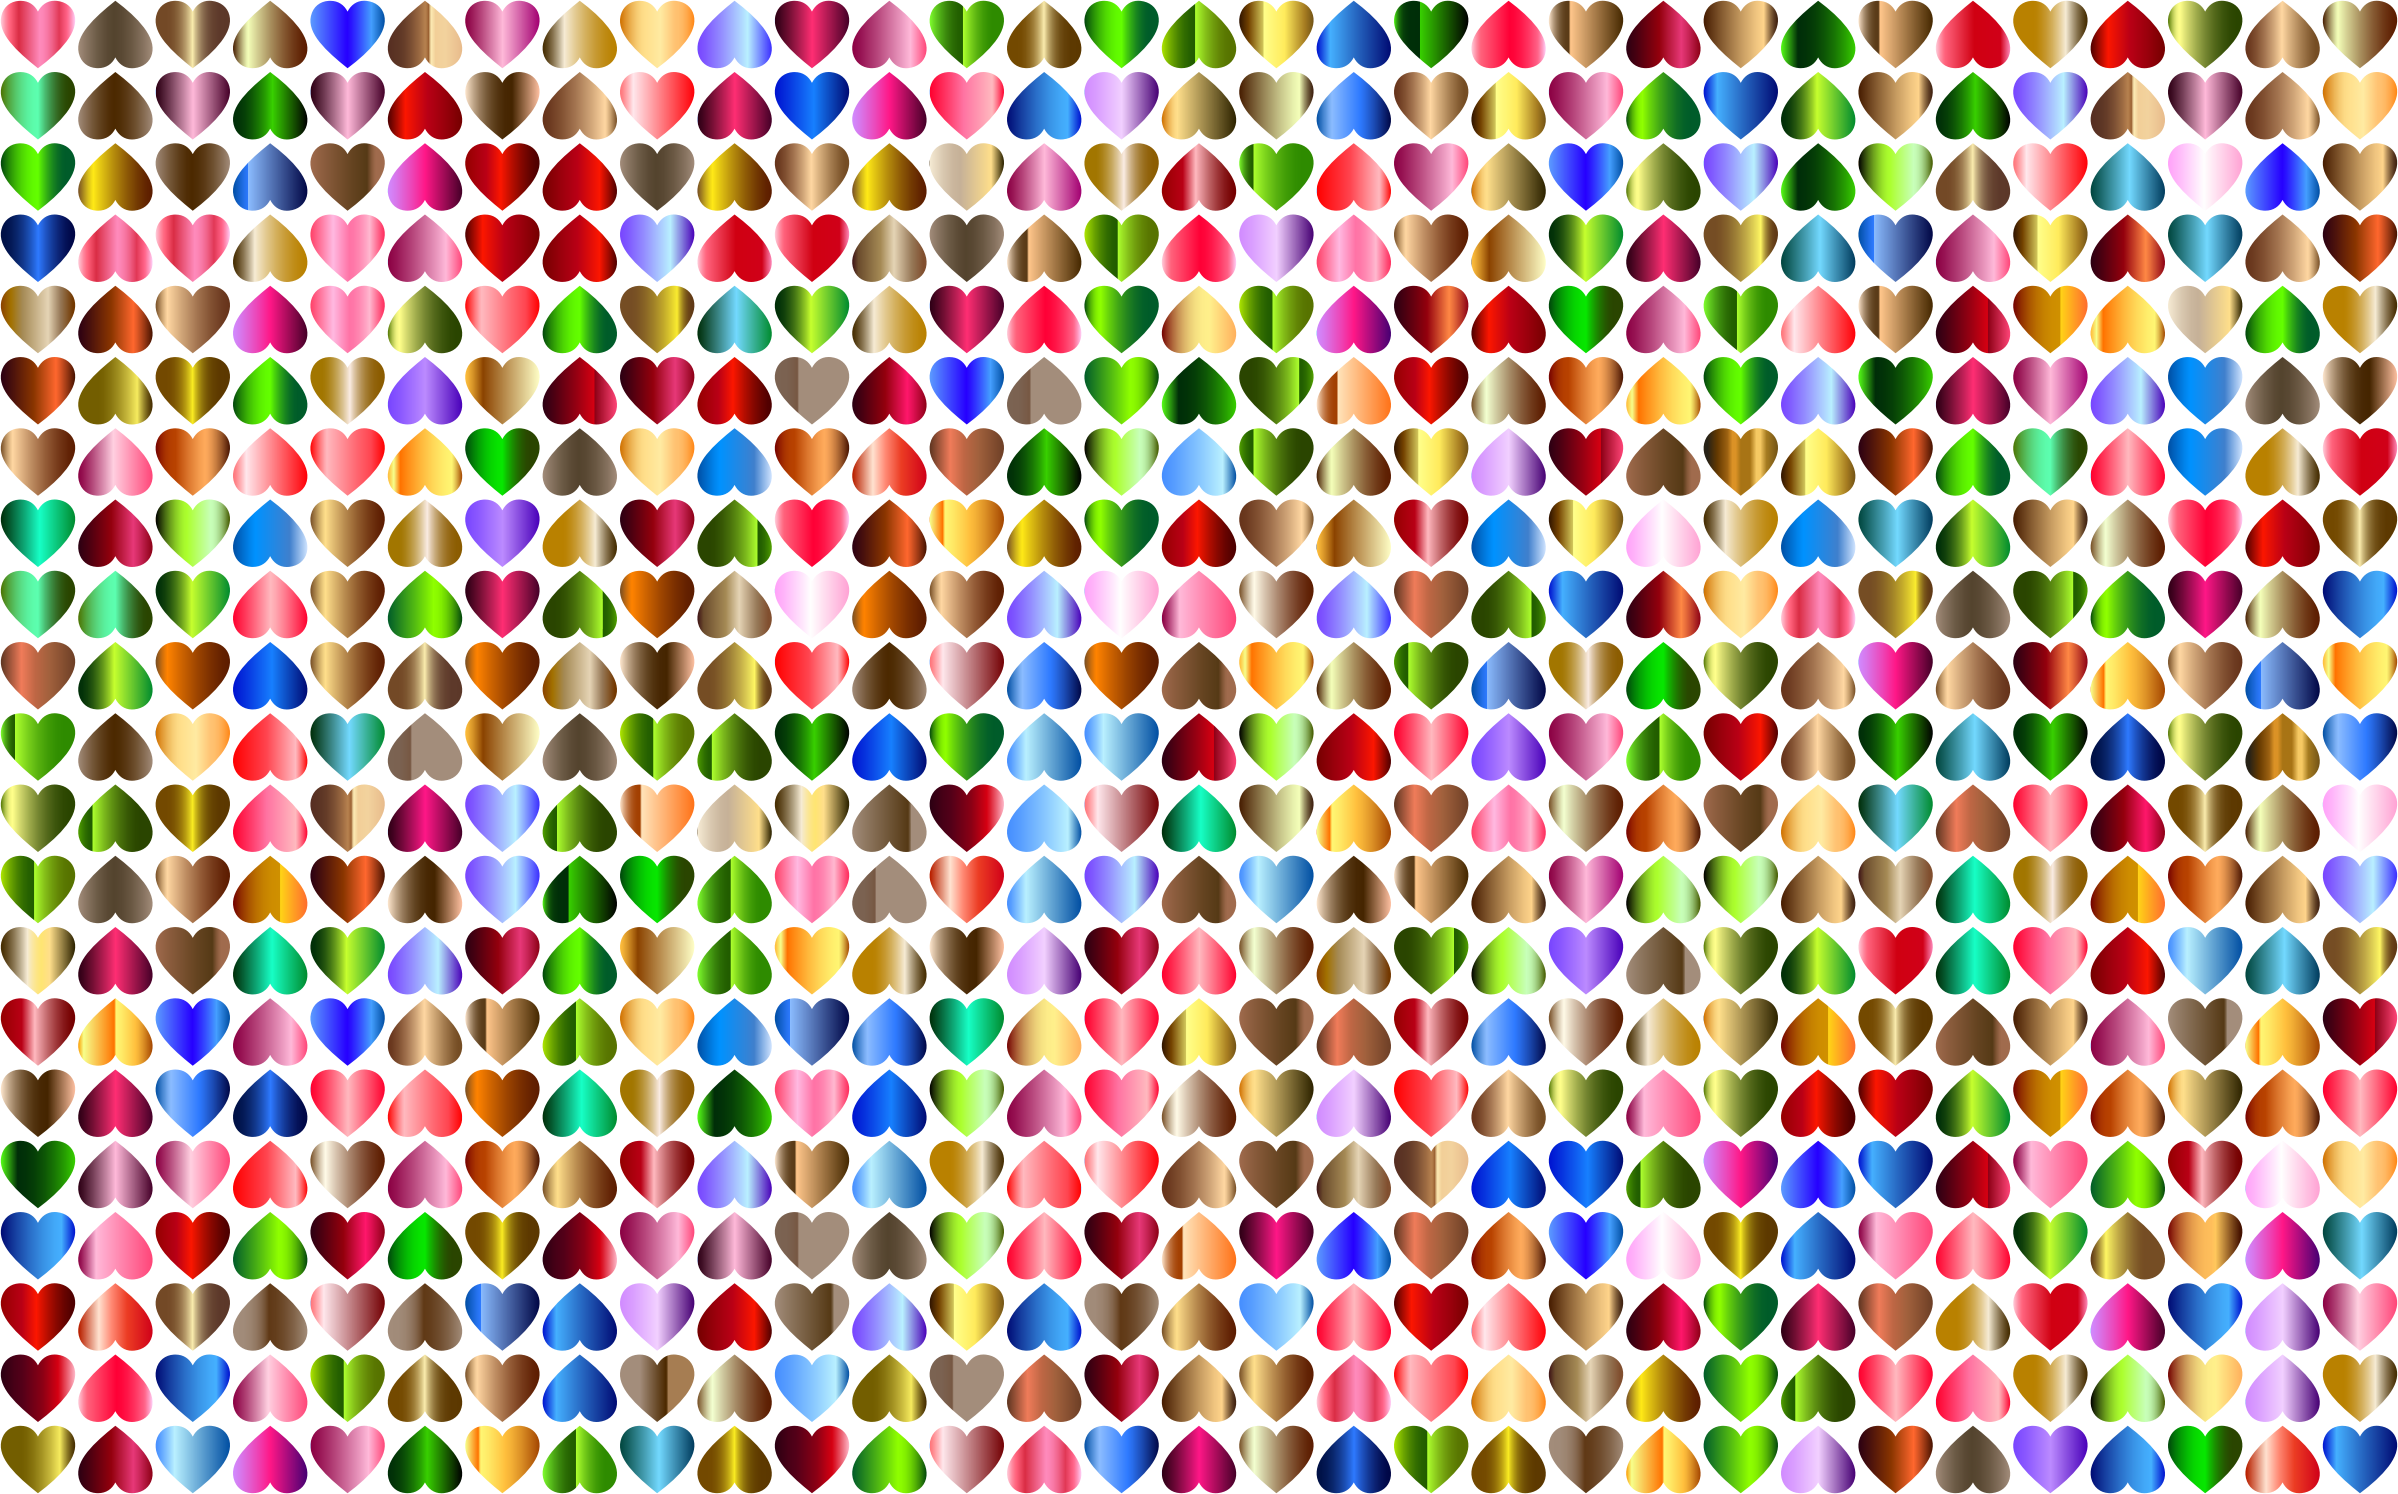 Prismatic Alternating Hearts Pattern Background 6 No Black Background by GDJ